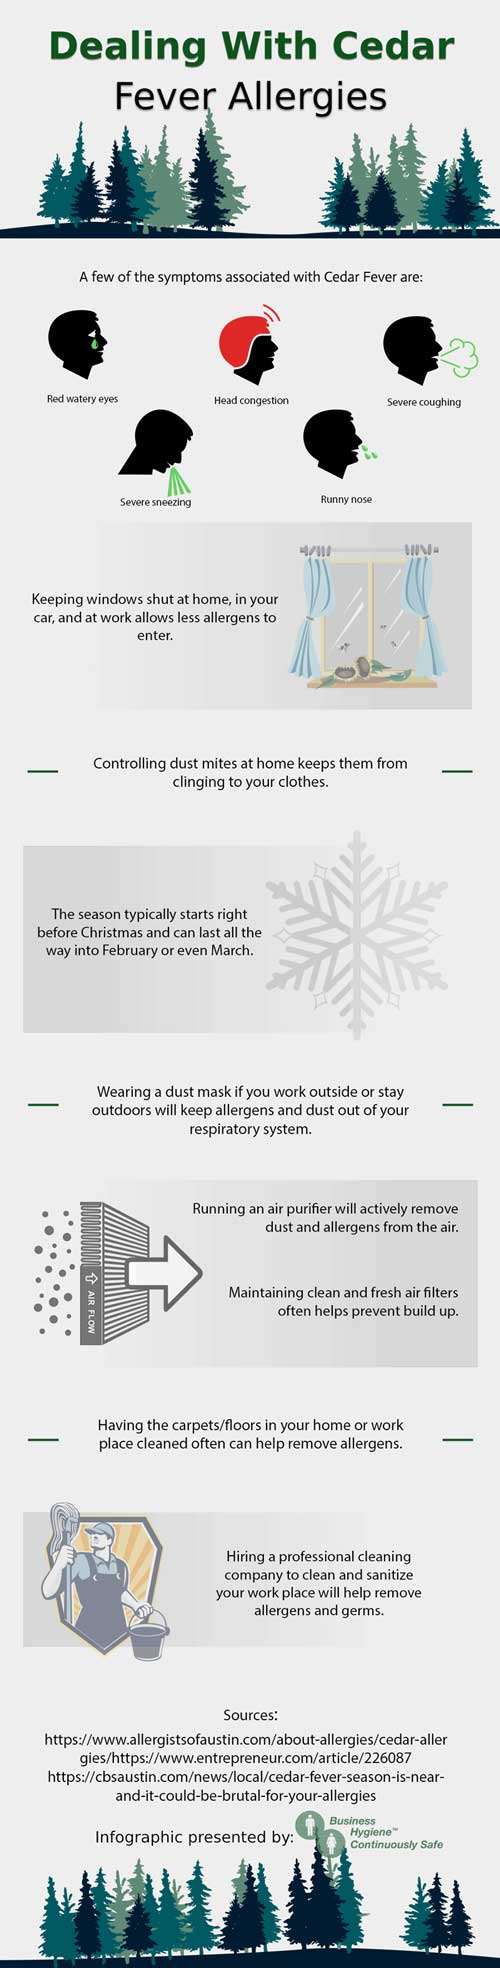 Infographic on Dealing with Cedar Fever Allergies—Read below for text version